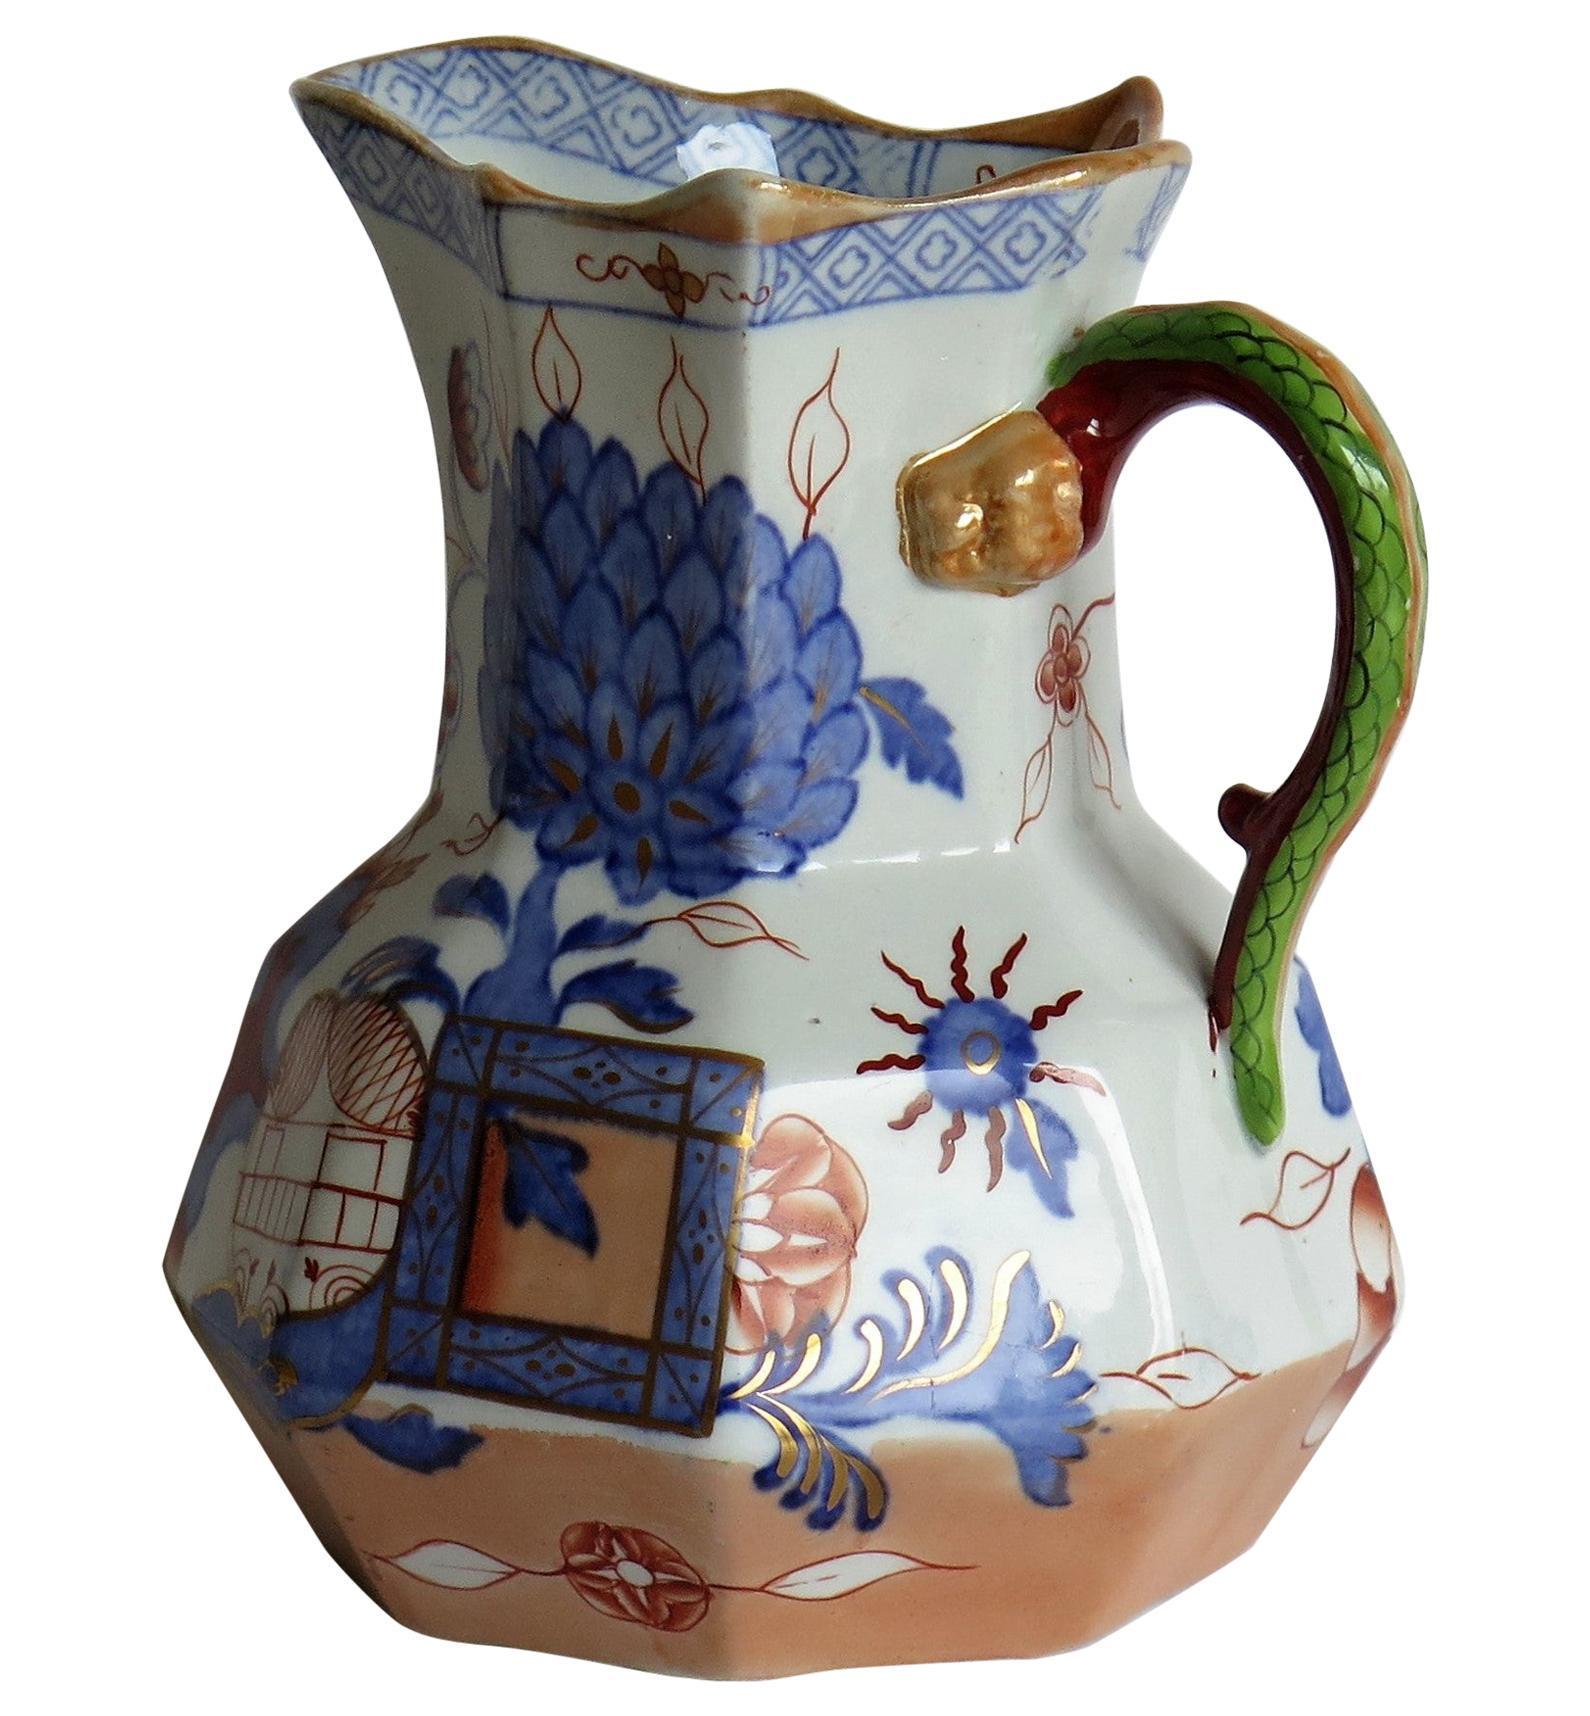 Mason's Ironstone Hydra Jug or Pitcher in the Jardinière Pattern, circa 1870